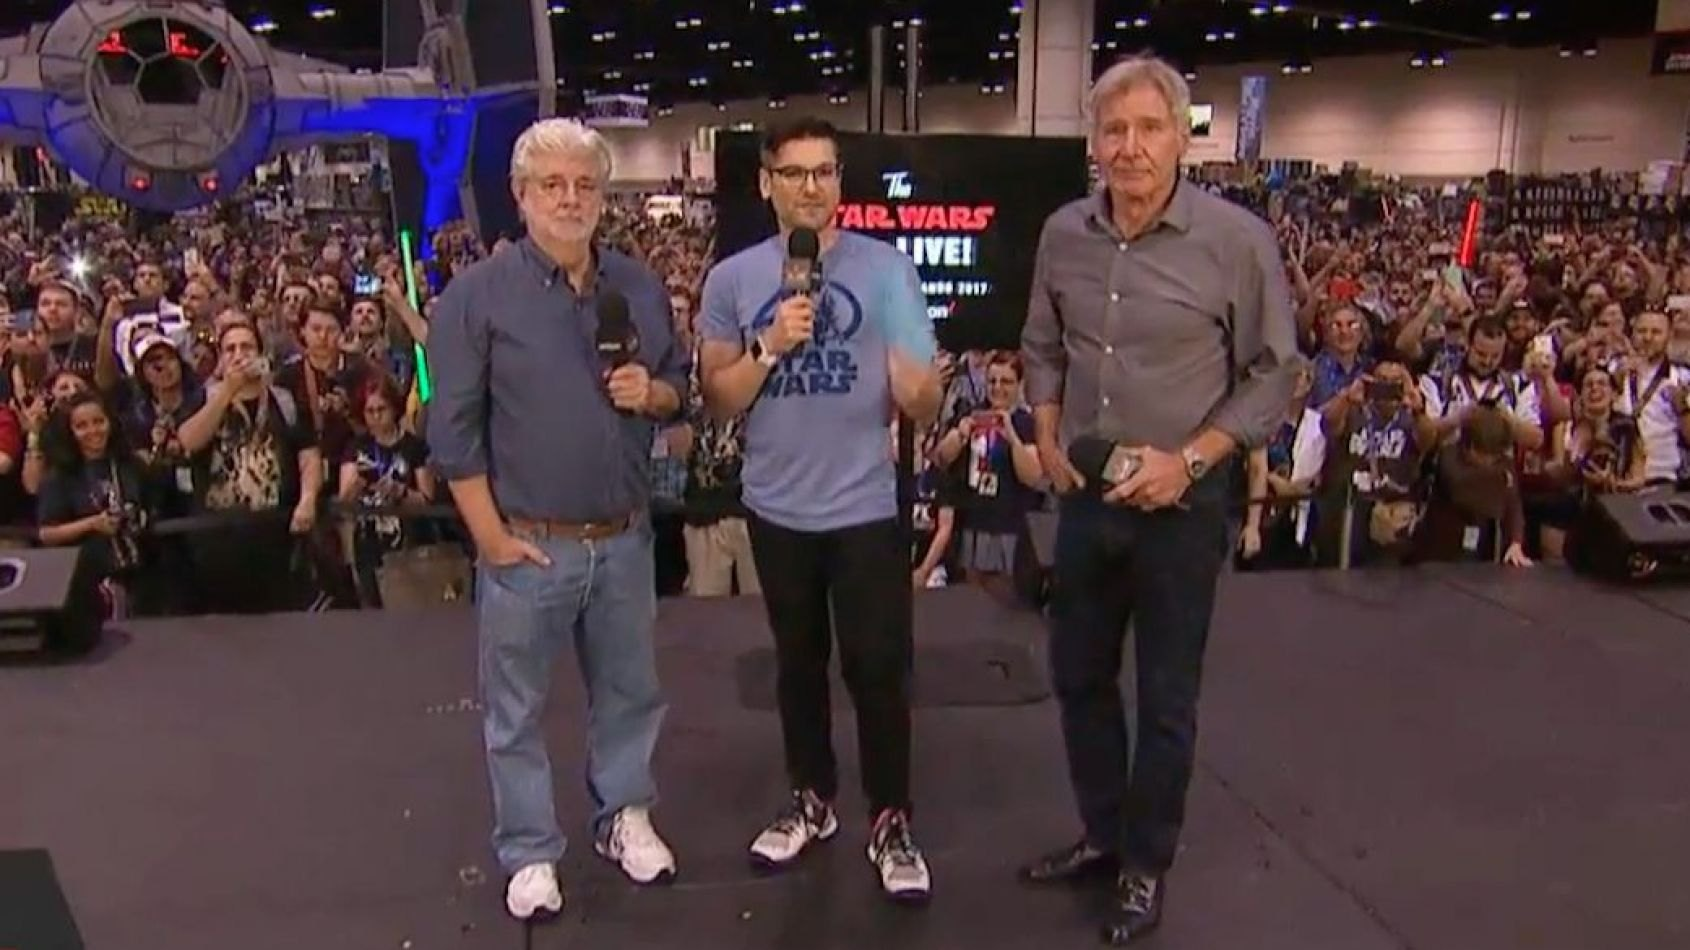 Celebration : La venue de George Lucas et Harrison Ford au SW Show !